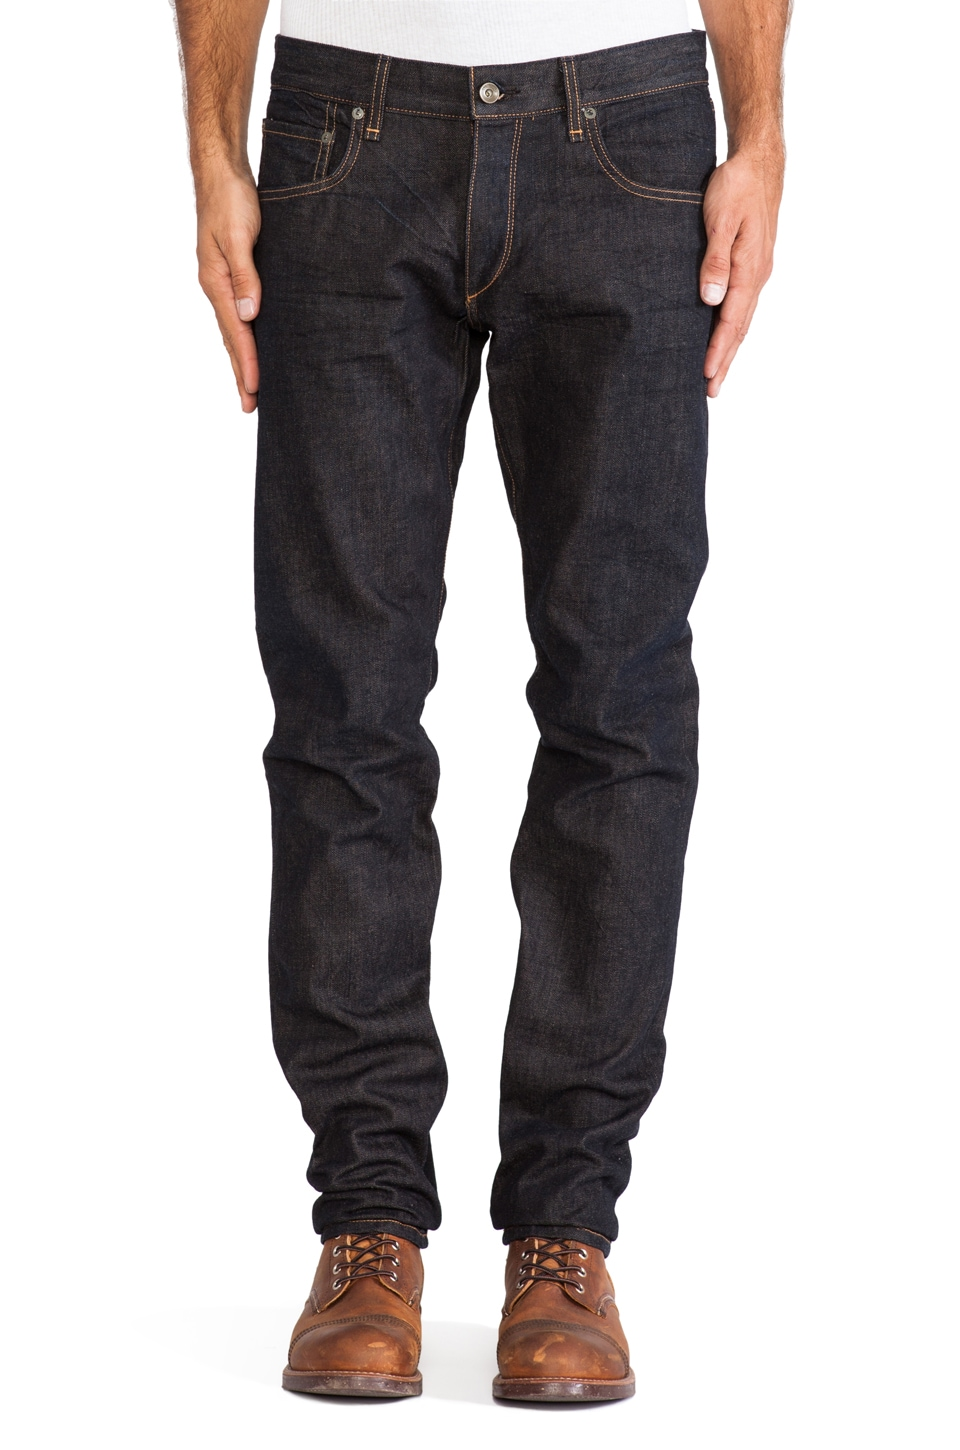 Rag & Bone Fit 2 Slim Jeans in Harrow